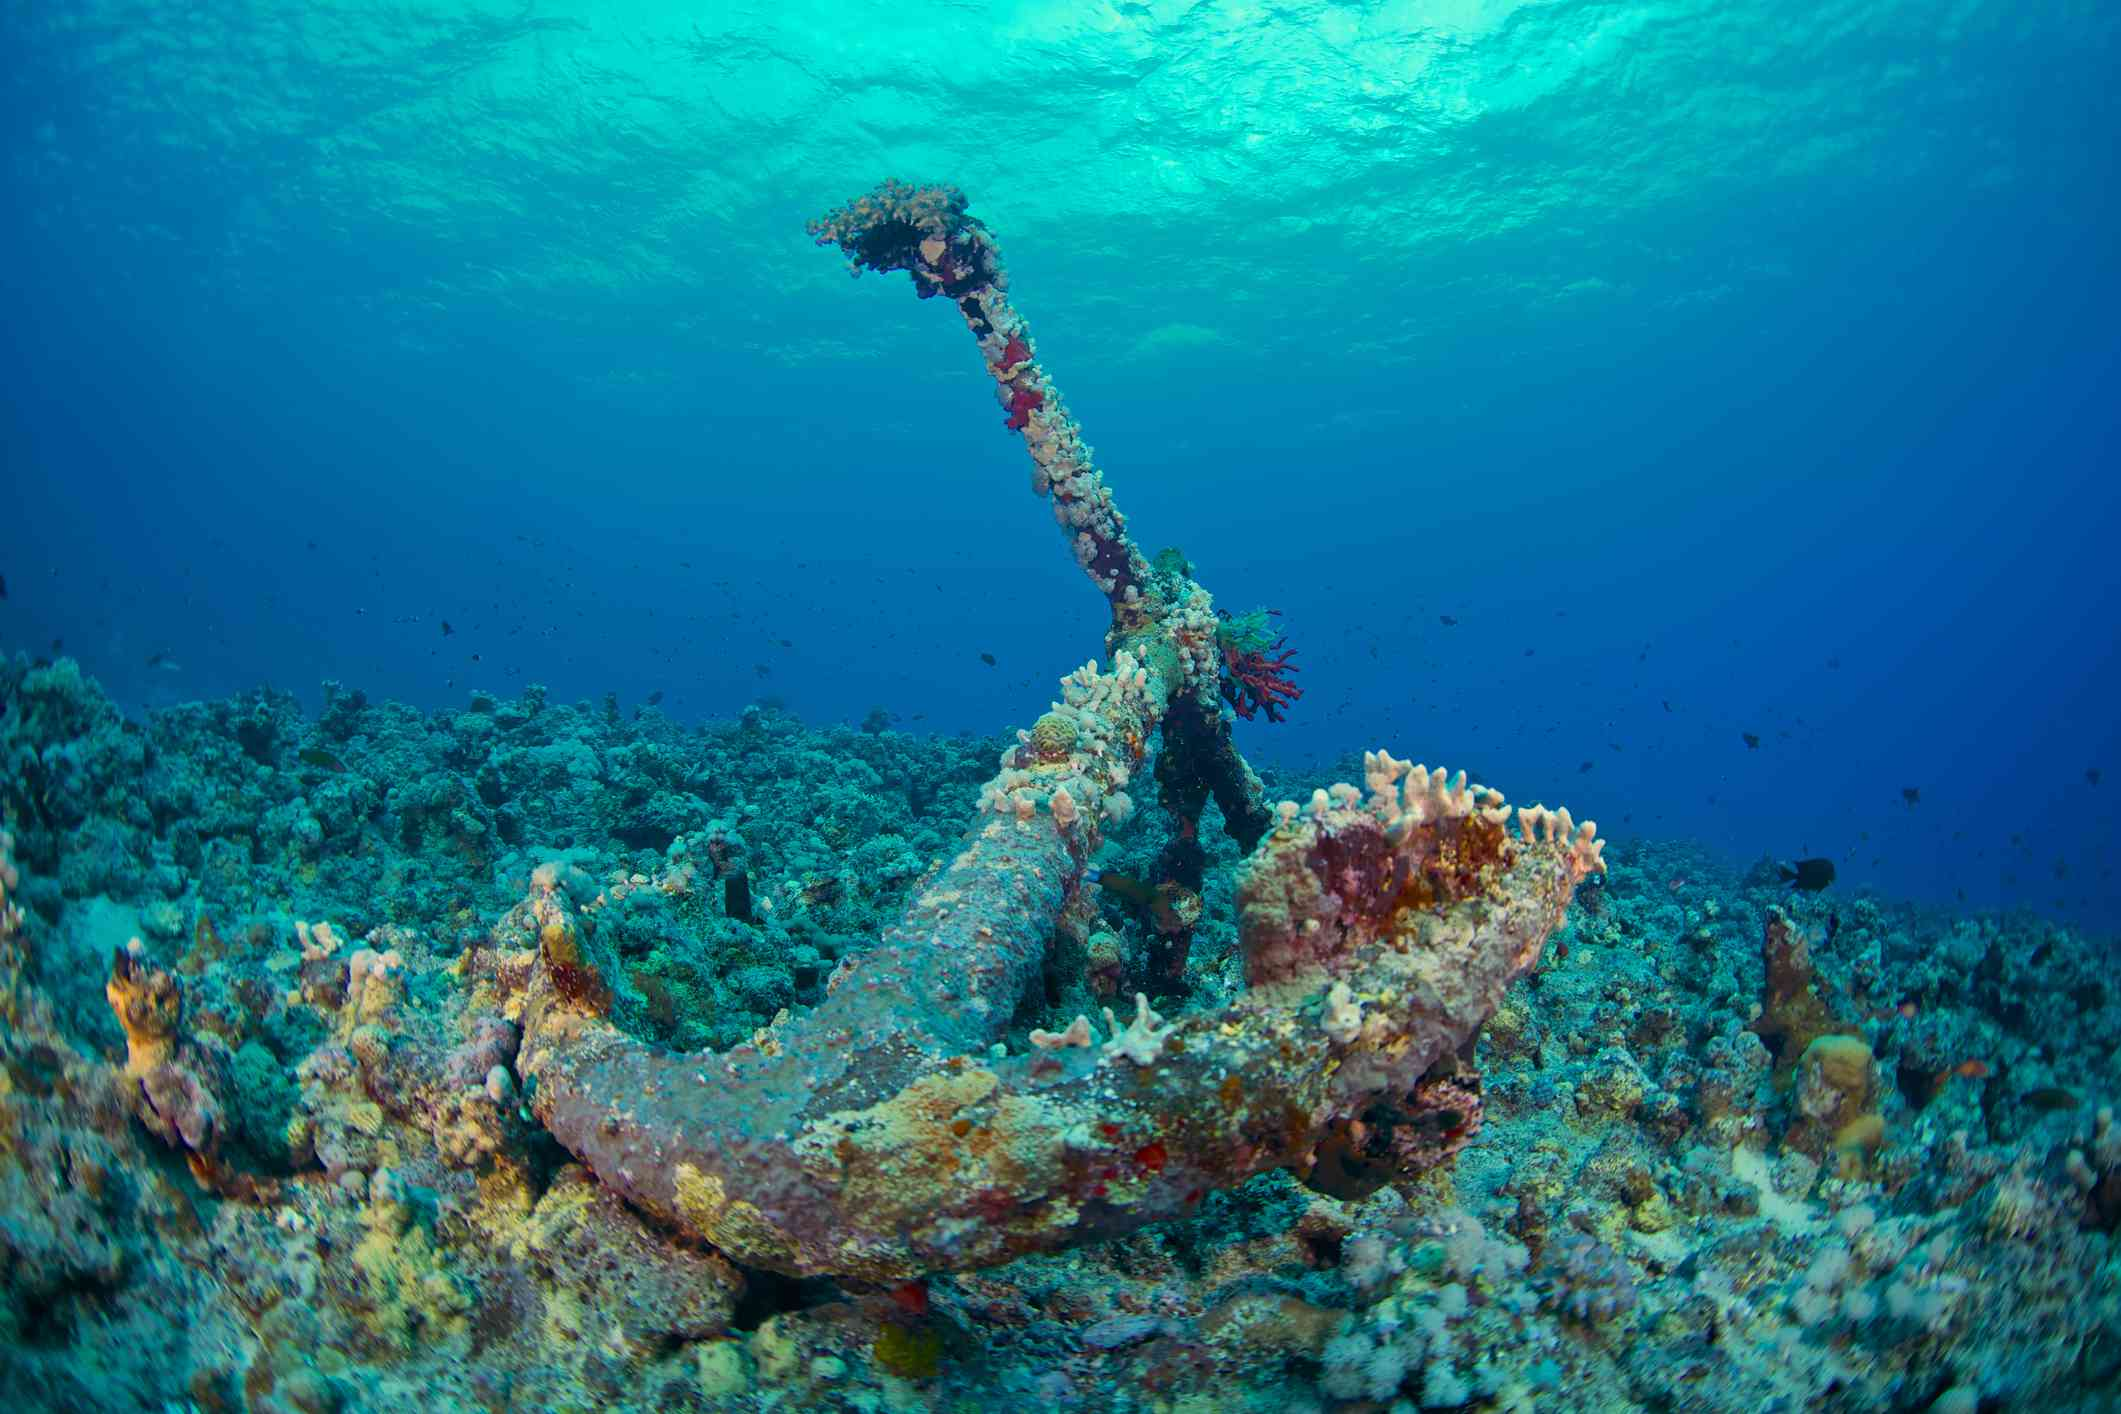 Coral reef attached to a sunken anchor